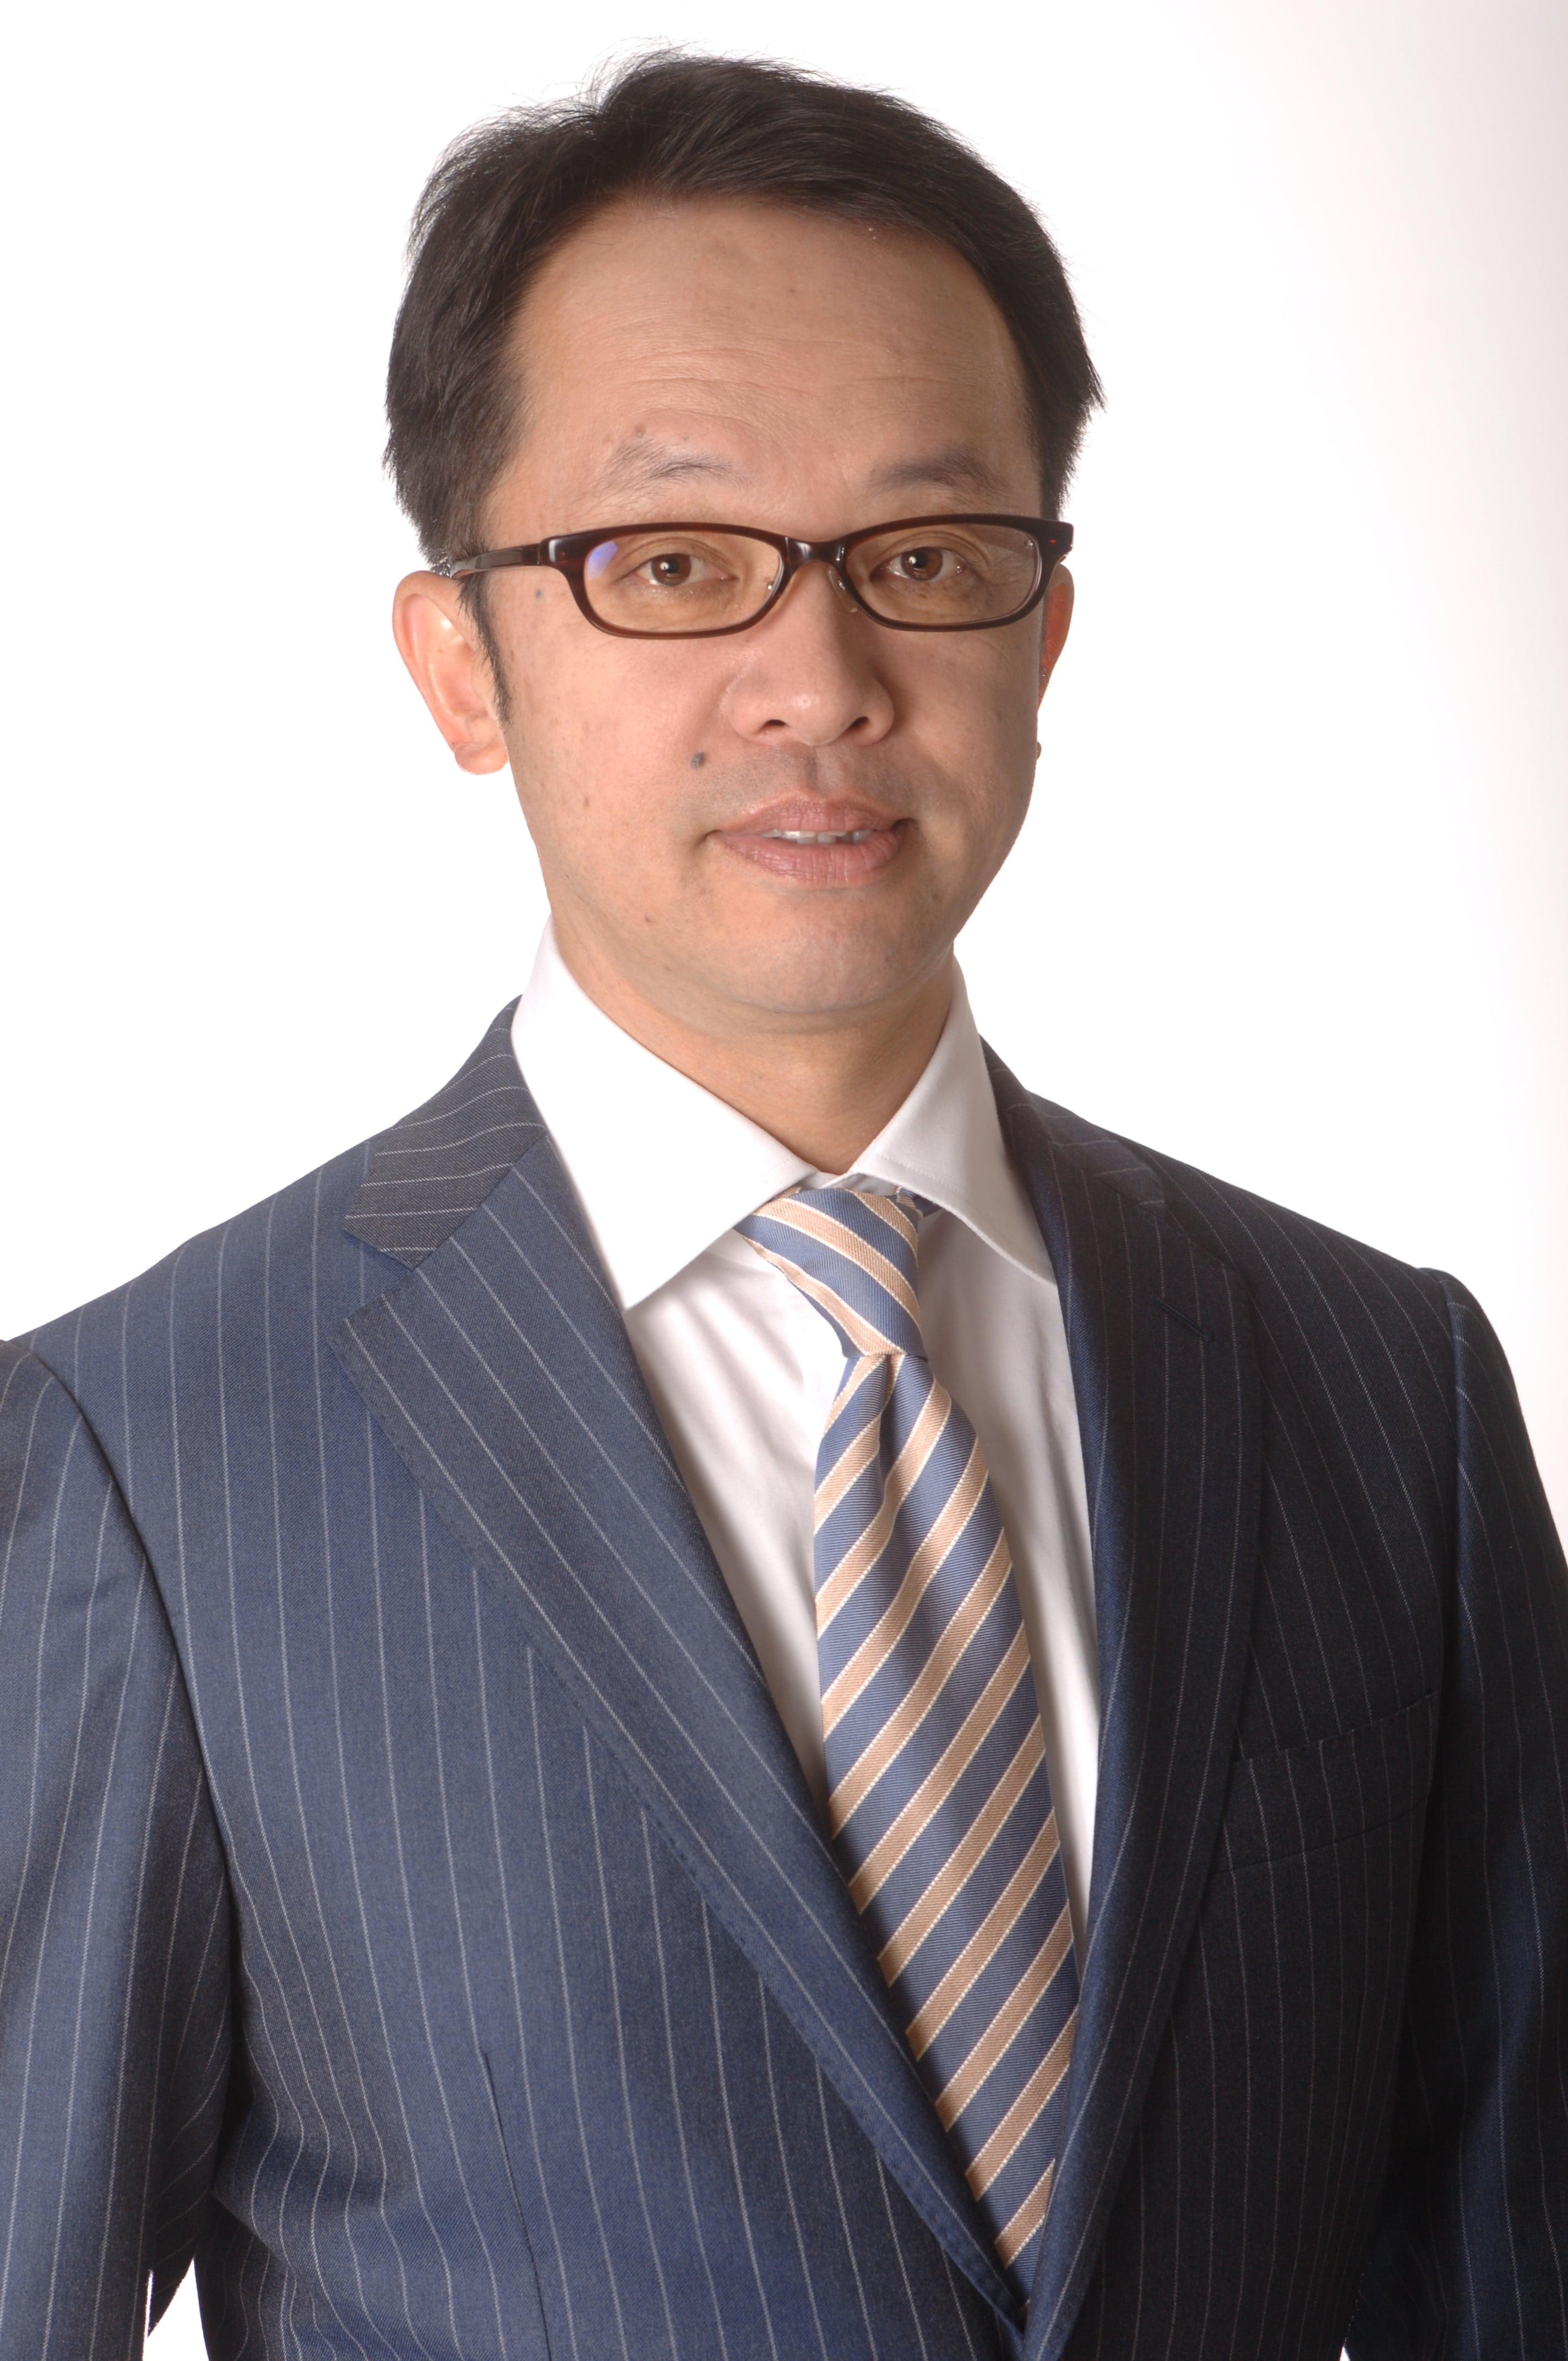 Macromill, Inc. announces appointment of Masahiro Shimizu as Chief Financial Officer (CFO)